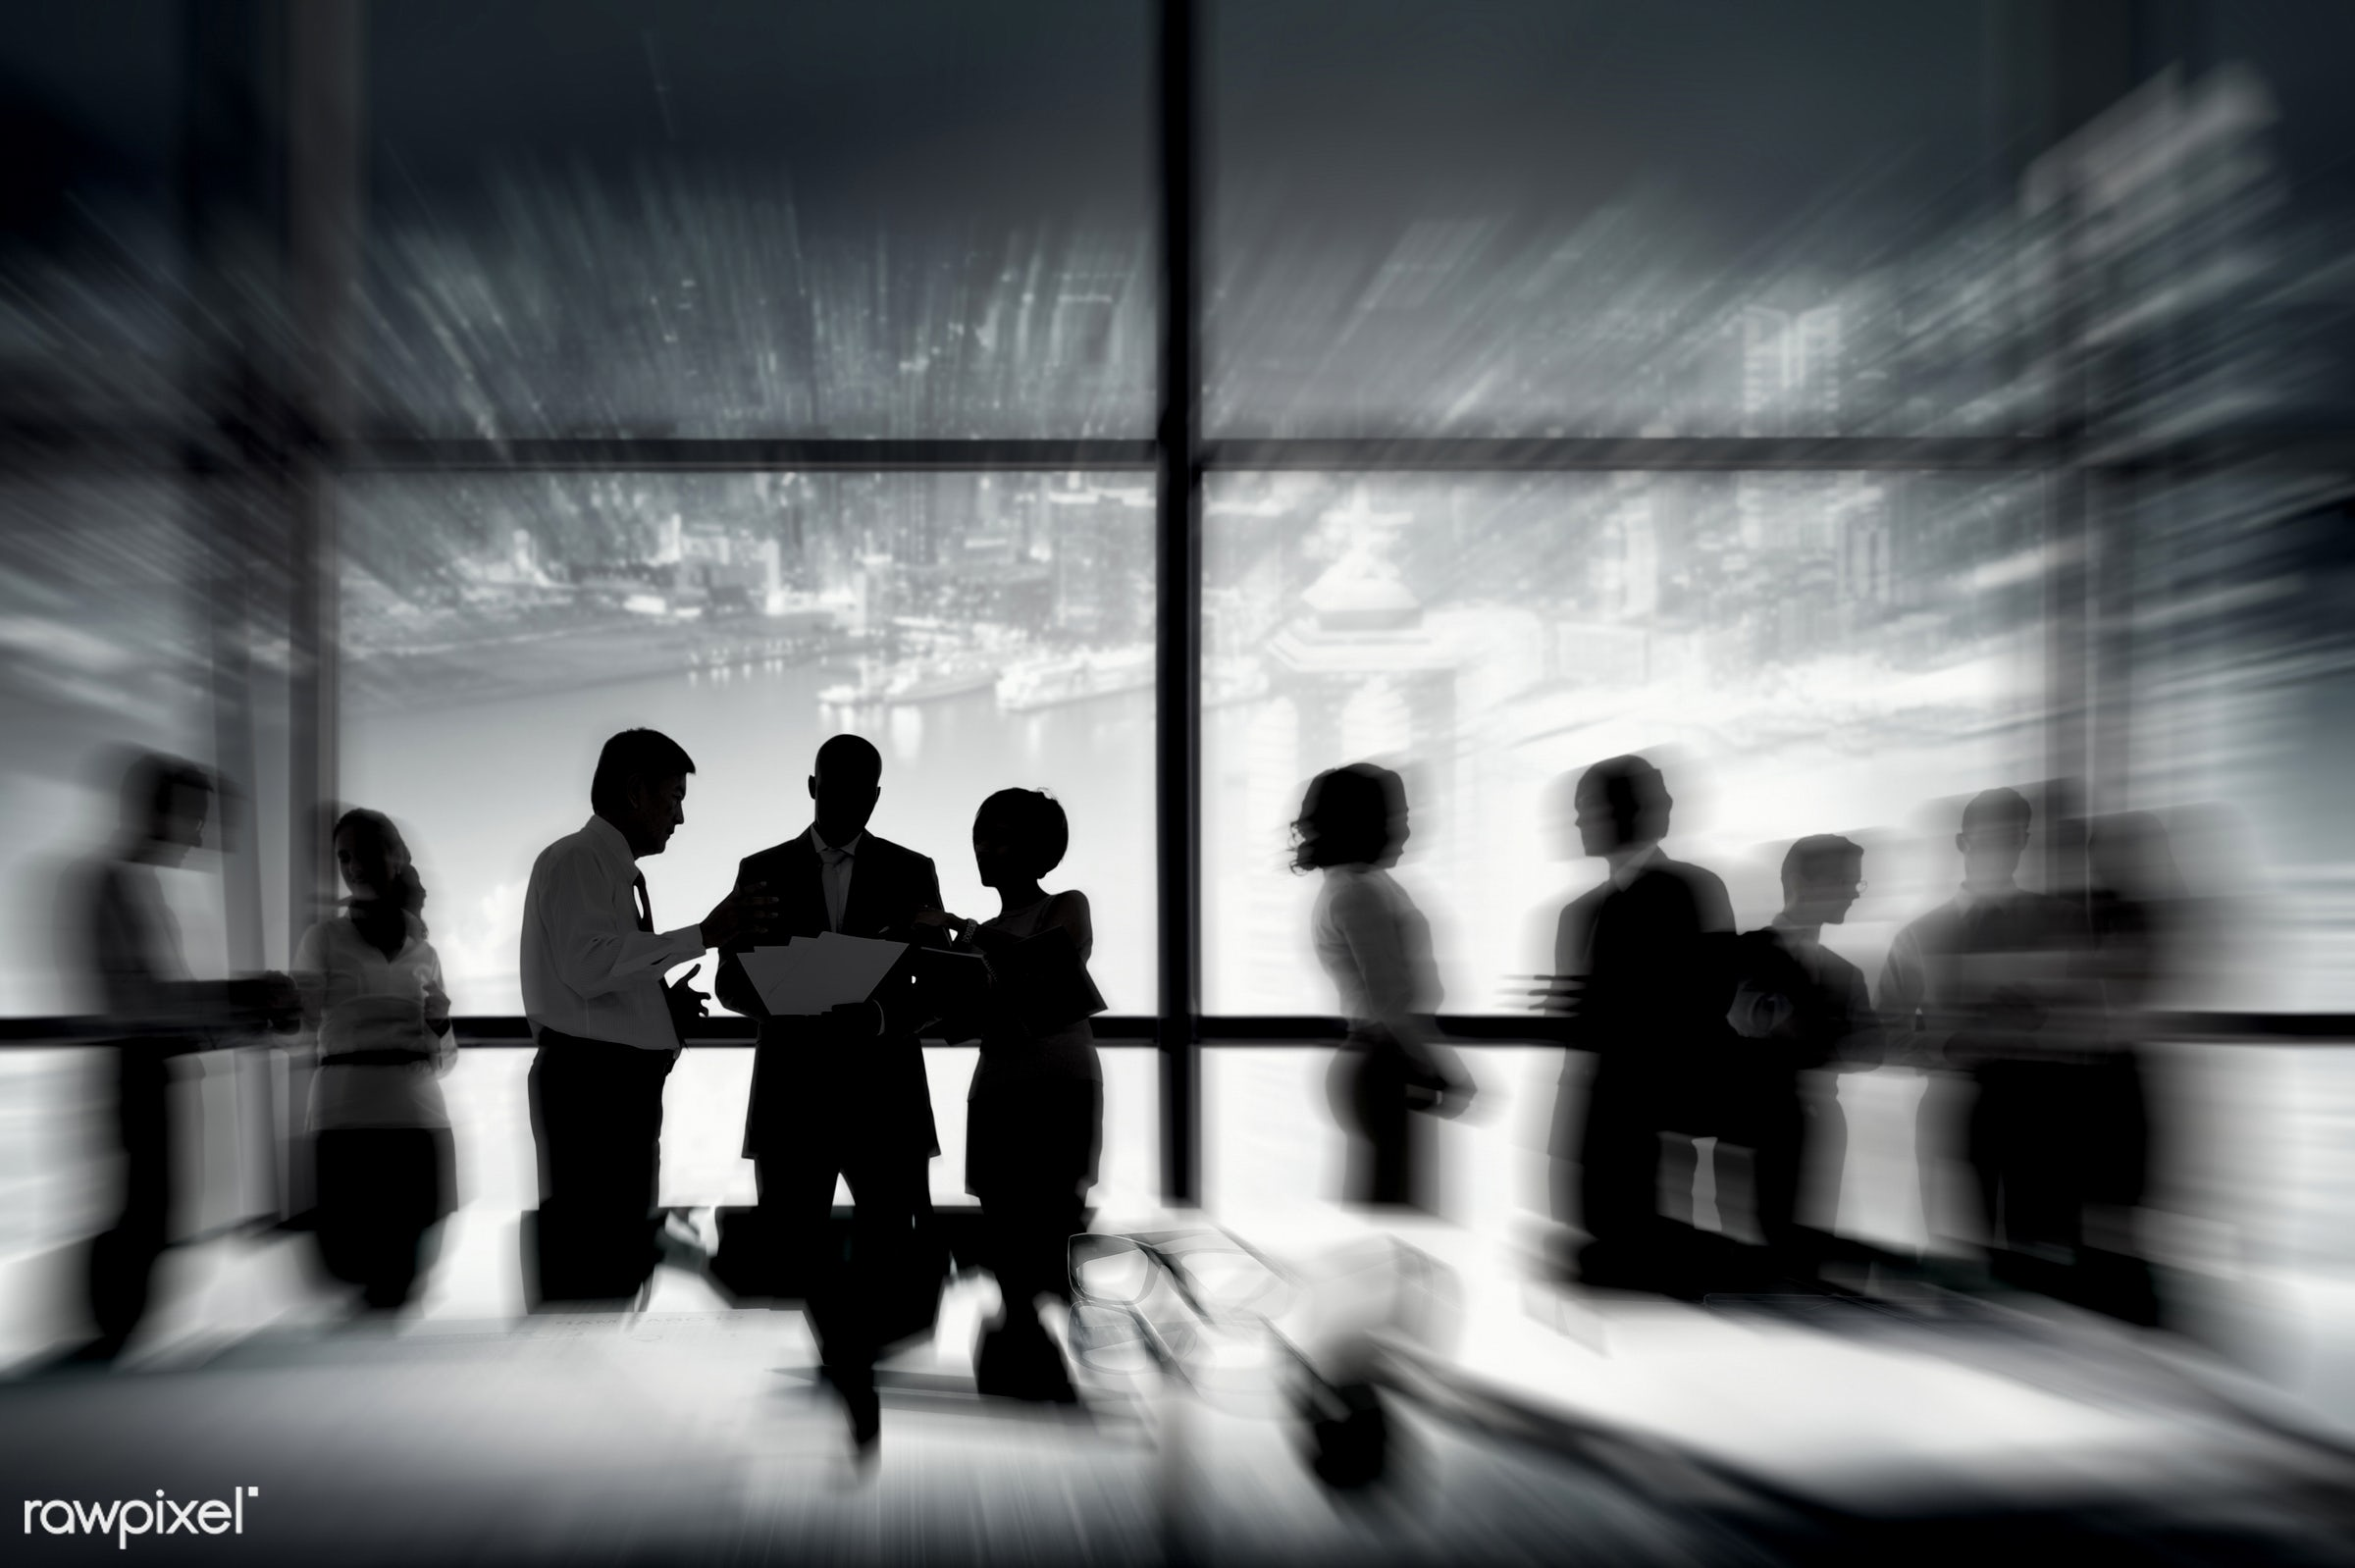 white, black, board room, brainstorming, building interior, business, business people, businessman, businesswoman, city,...